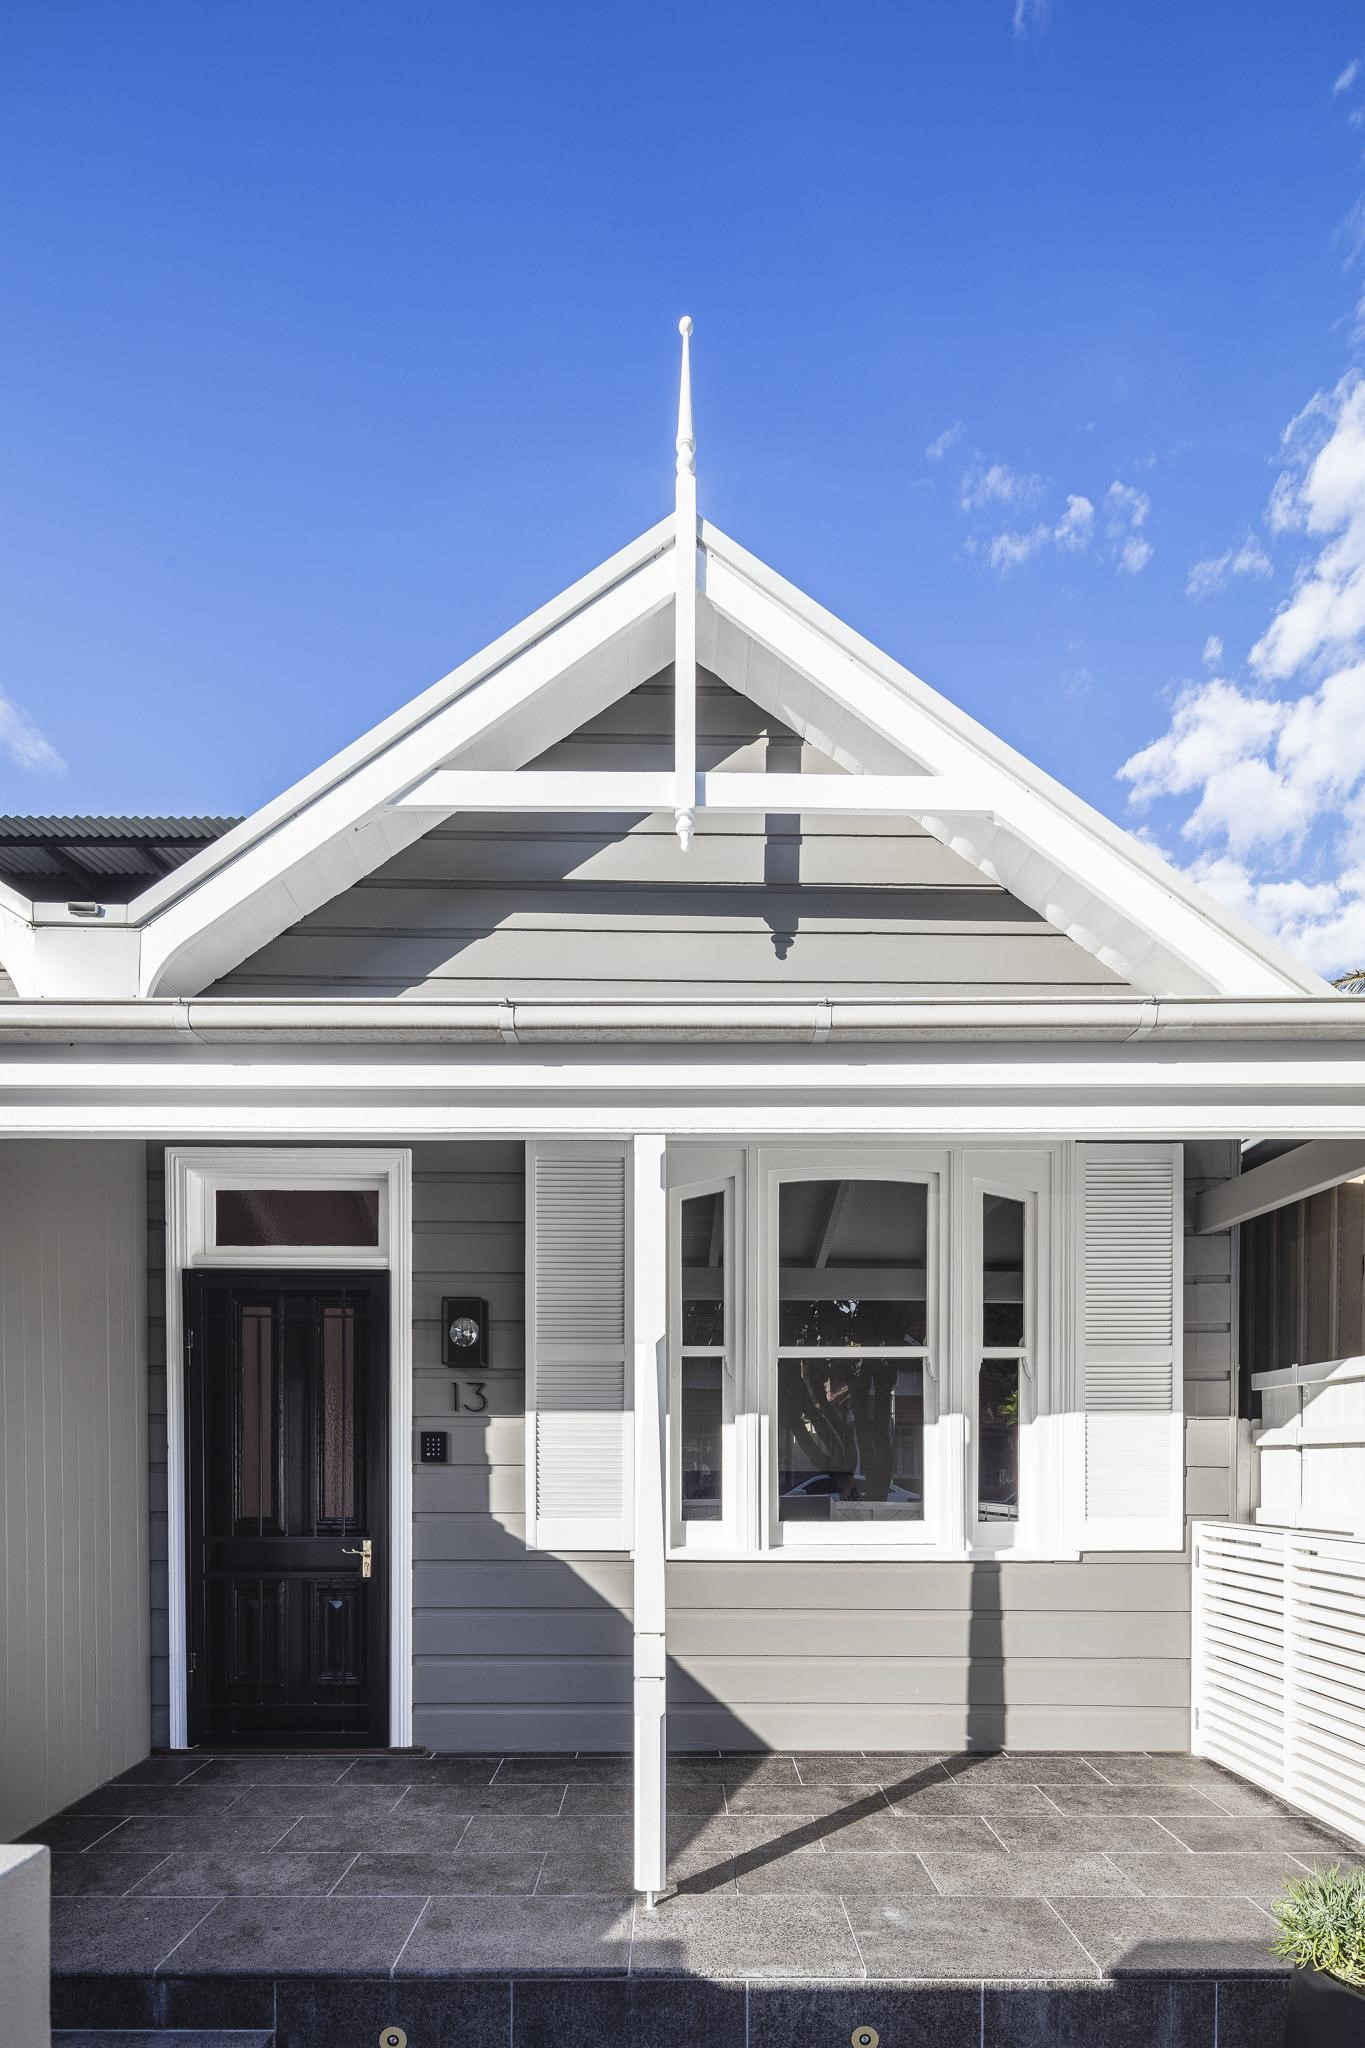 Local Australian Design And Architecture Beautfiful Homes And Houses